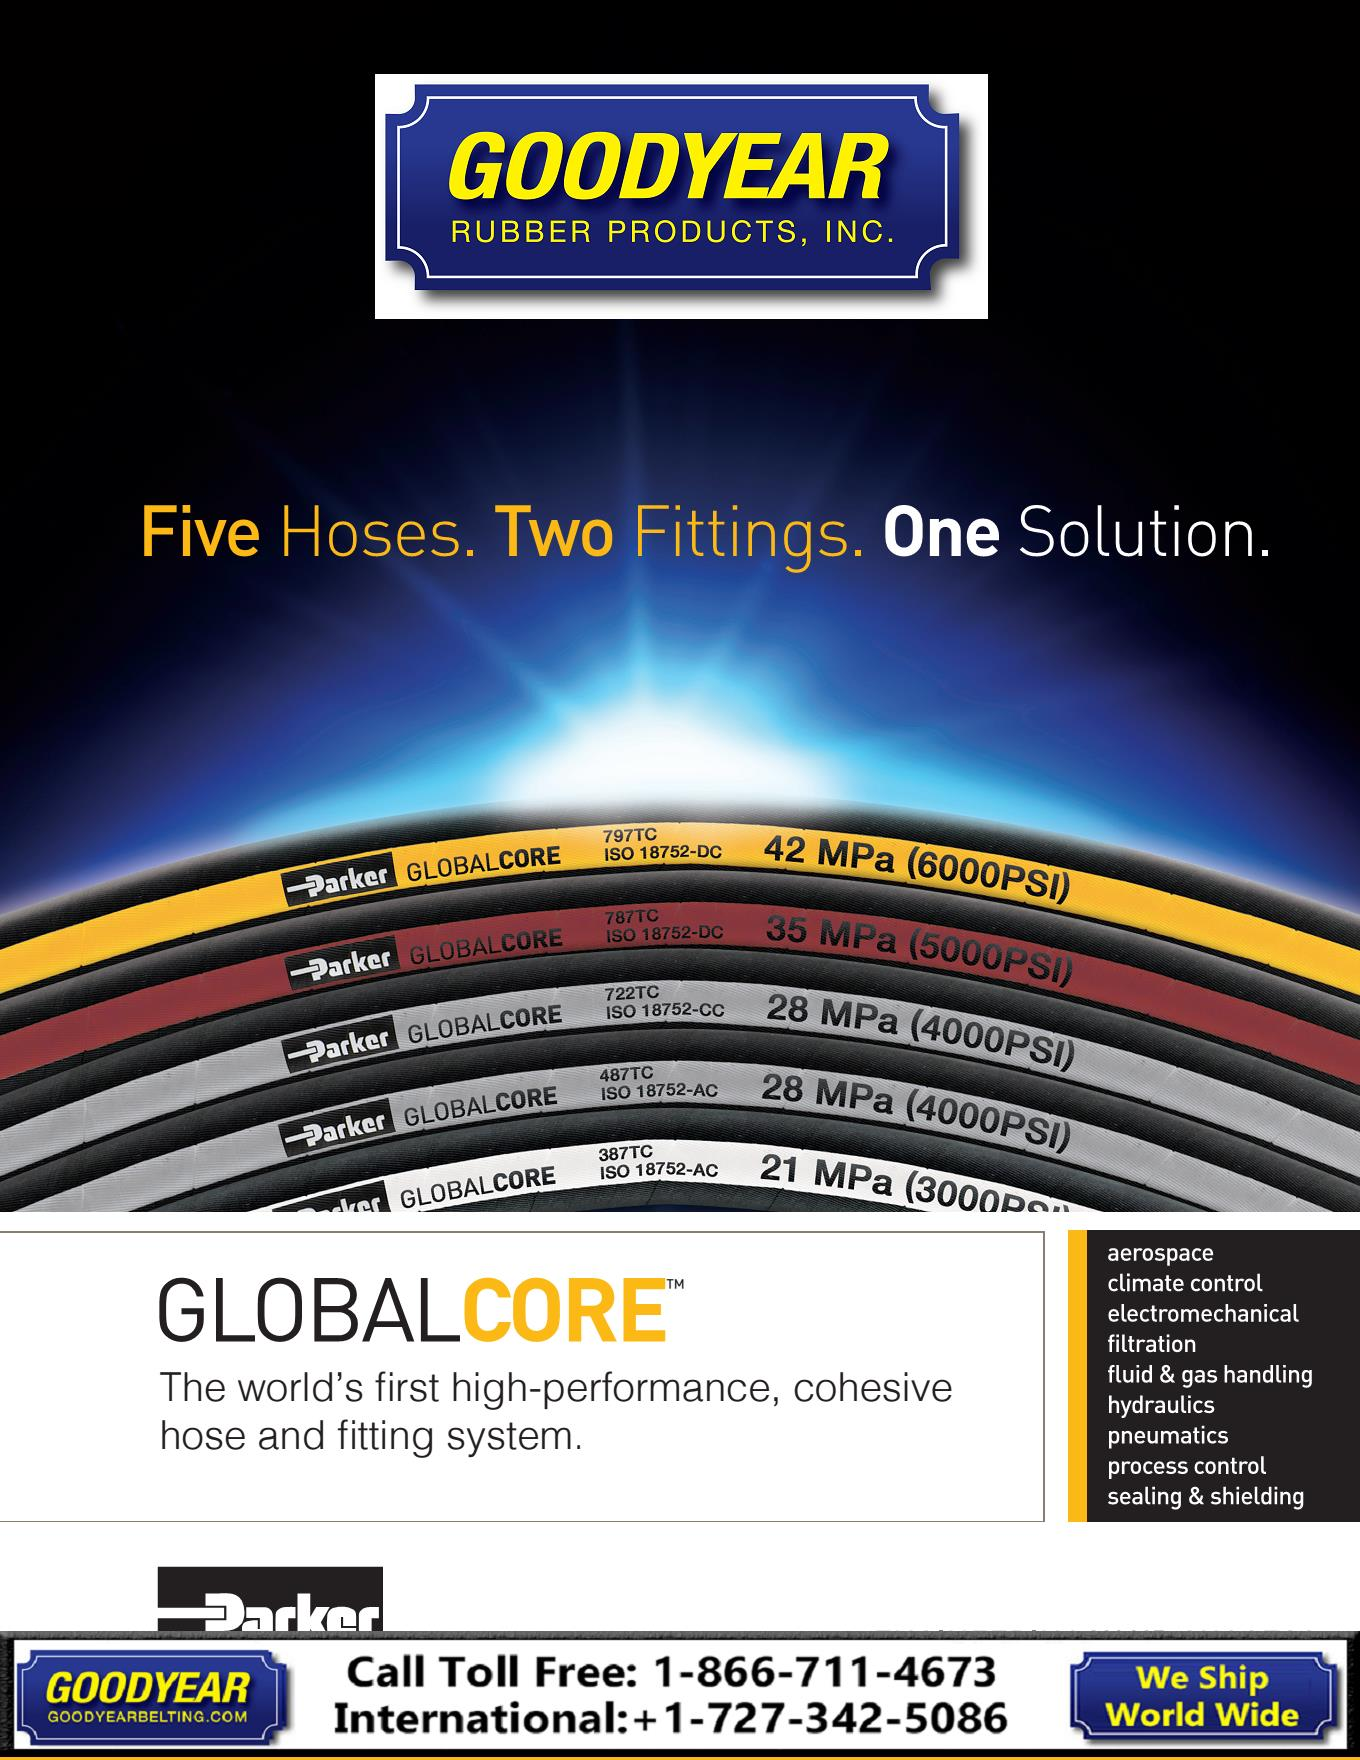 Parker Global Core Hoses Goodyear Rubber Products 866 711 4673